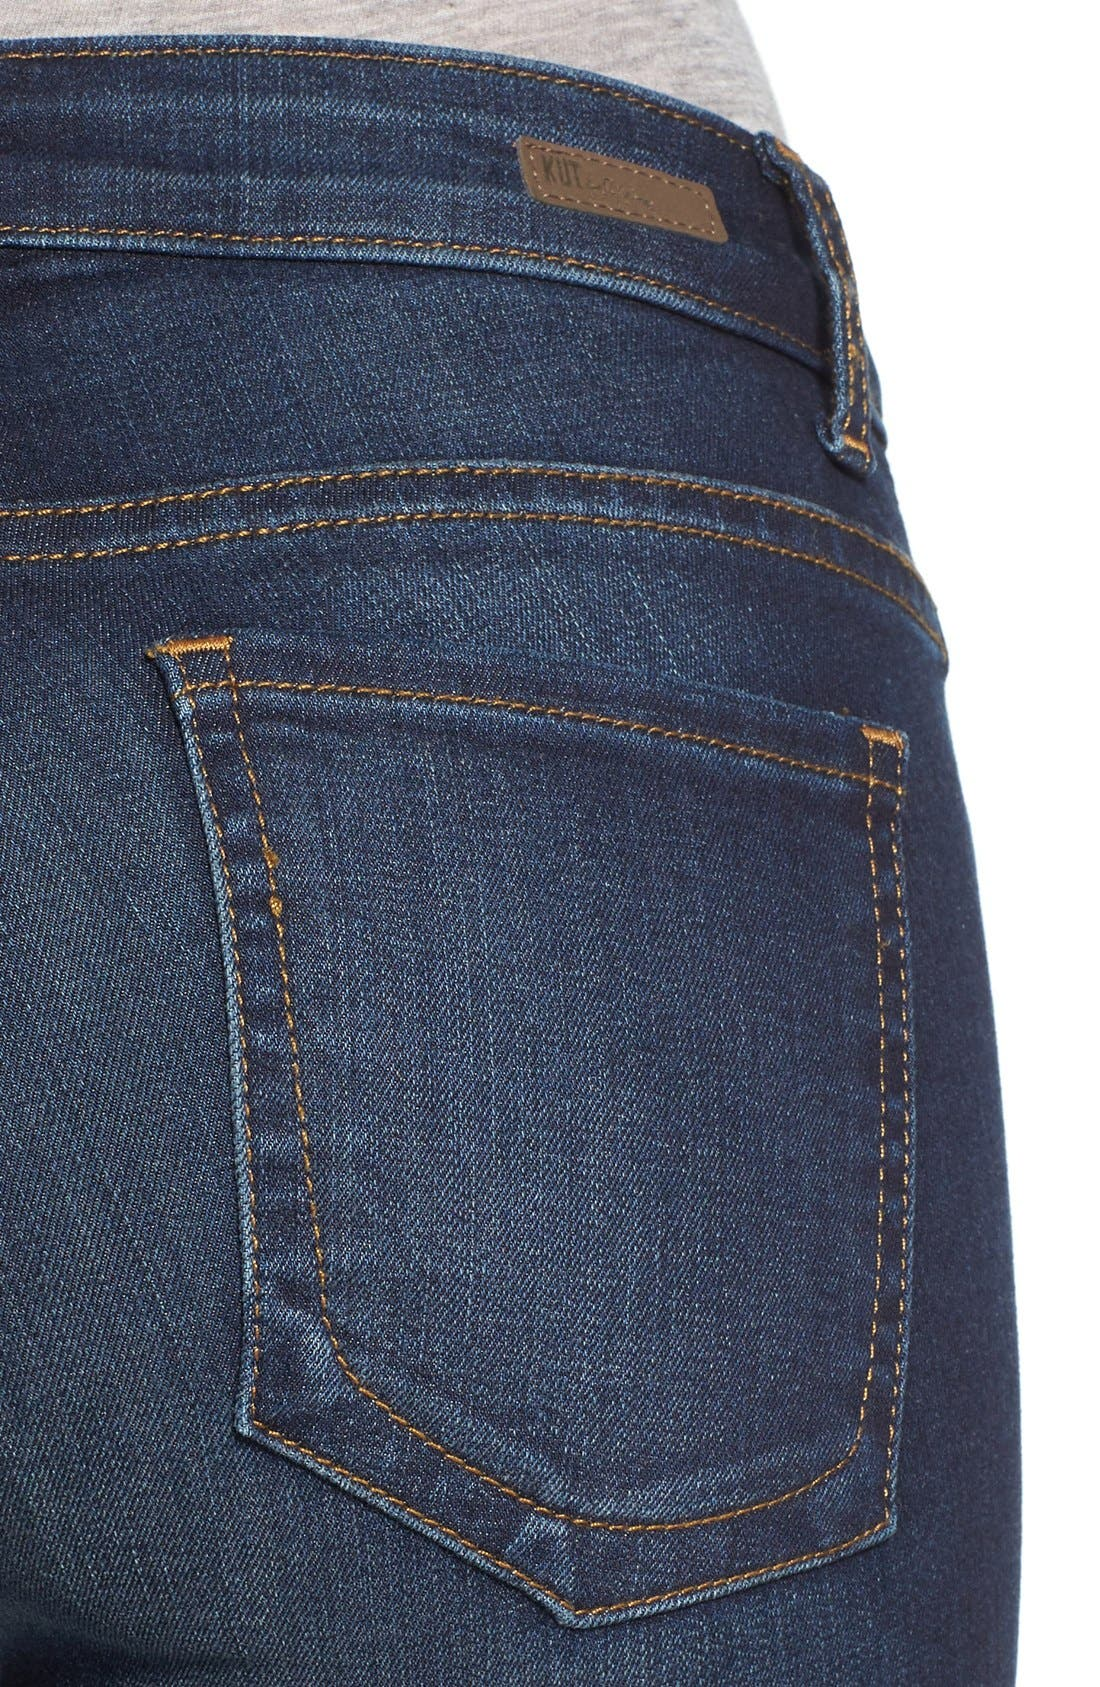 Alternate Image 5  - KUT from the Kloth 'Natalie' Stretch Bootleg Jeans (Closeness)